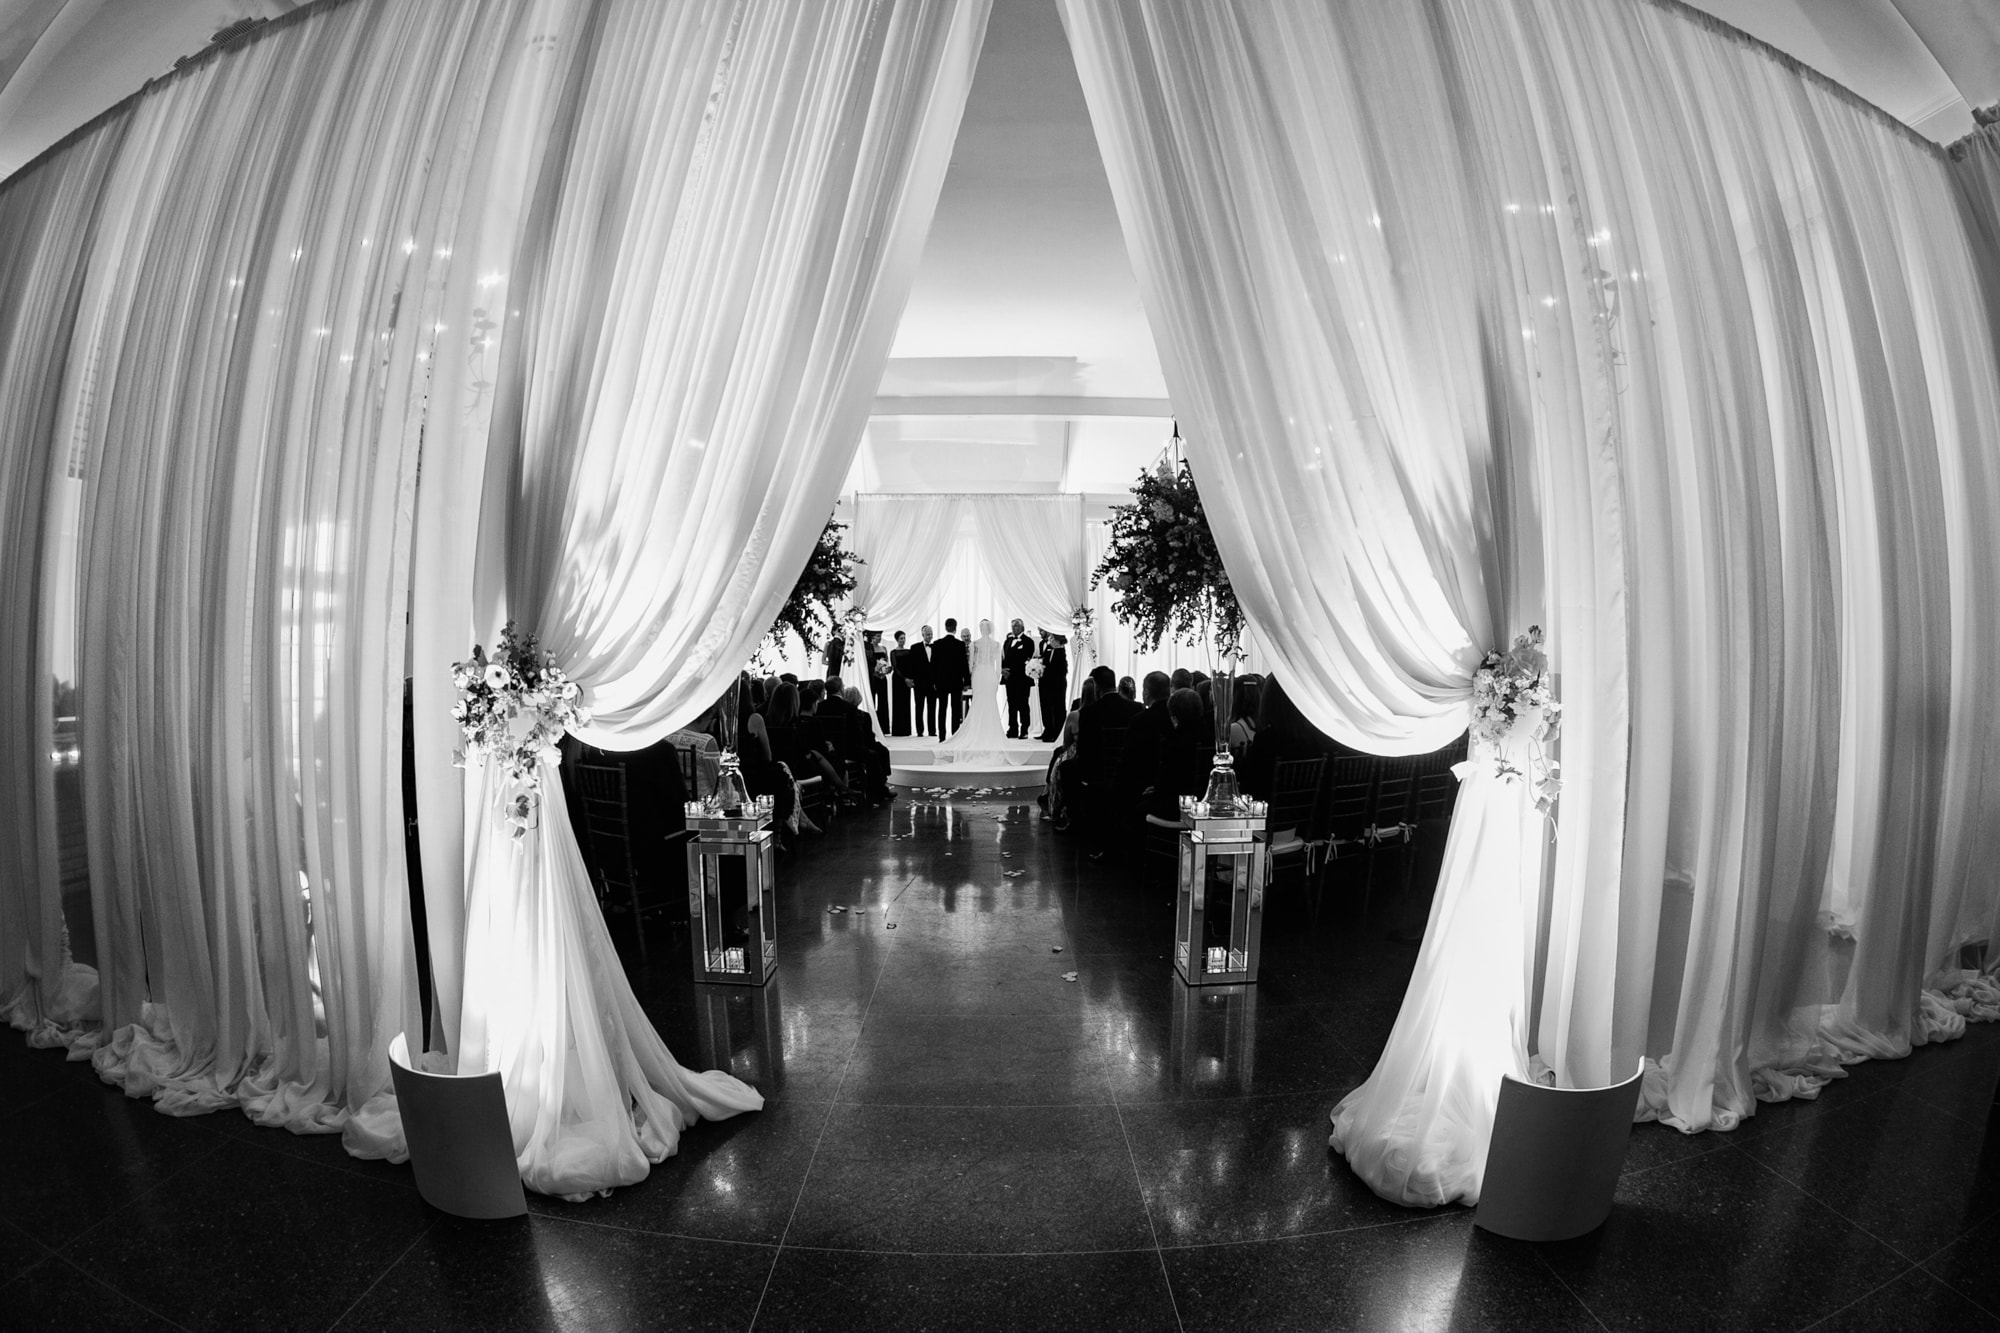 Dramatic black and white photo of wedding ceremony